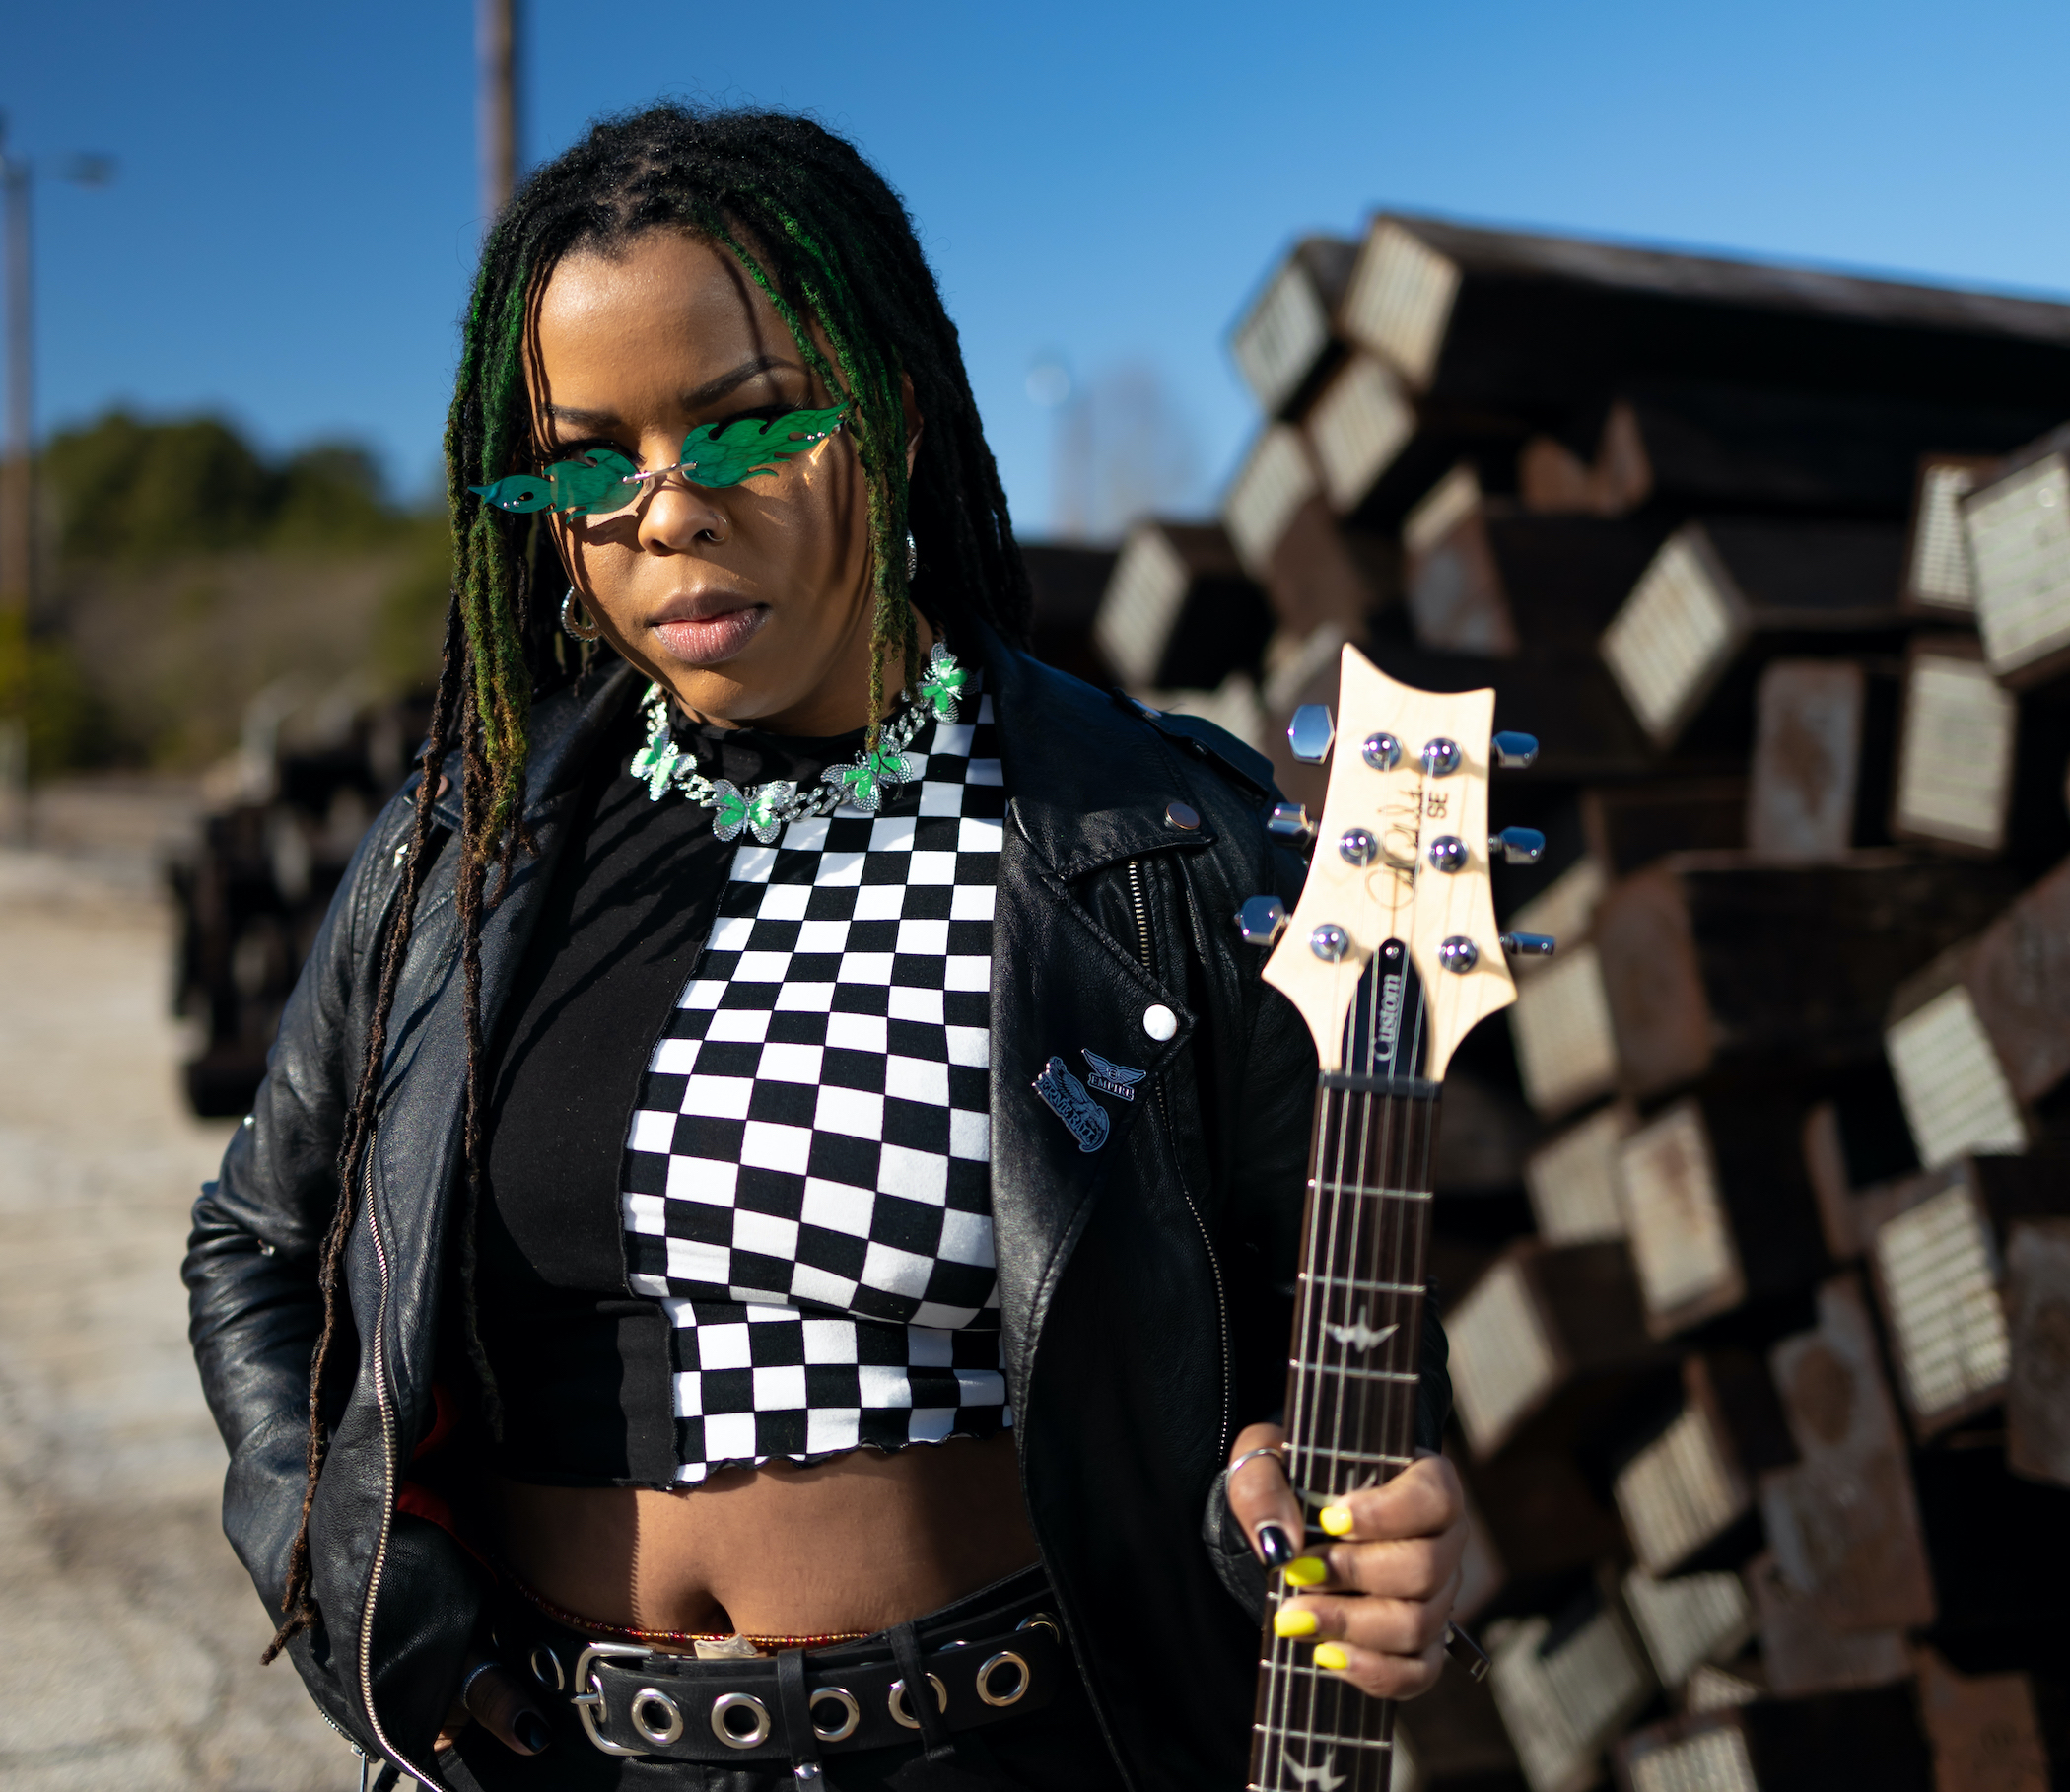 Celebrate Juneteenth with guitar heroes, a free Ledisi concert, film, dance and more